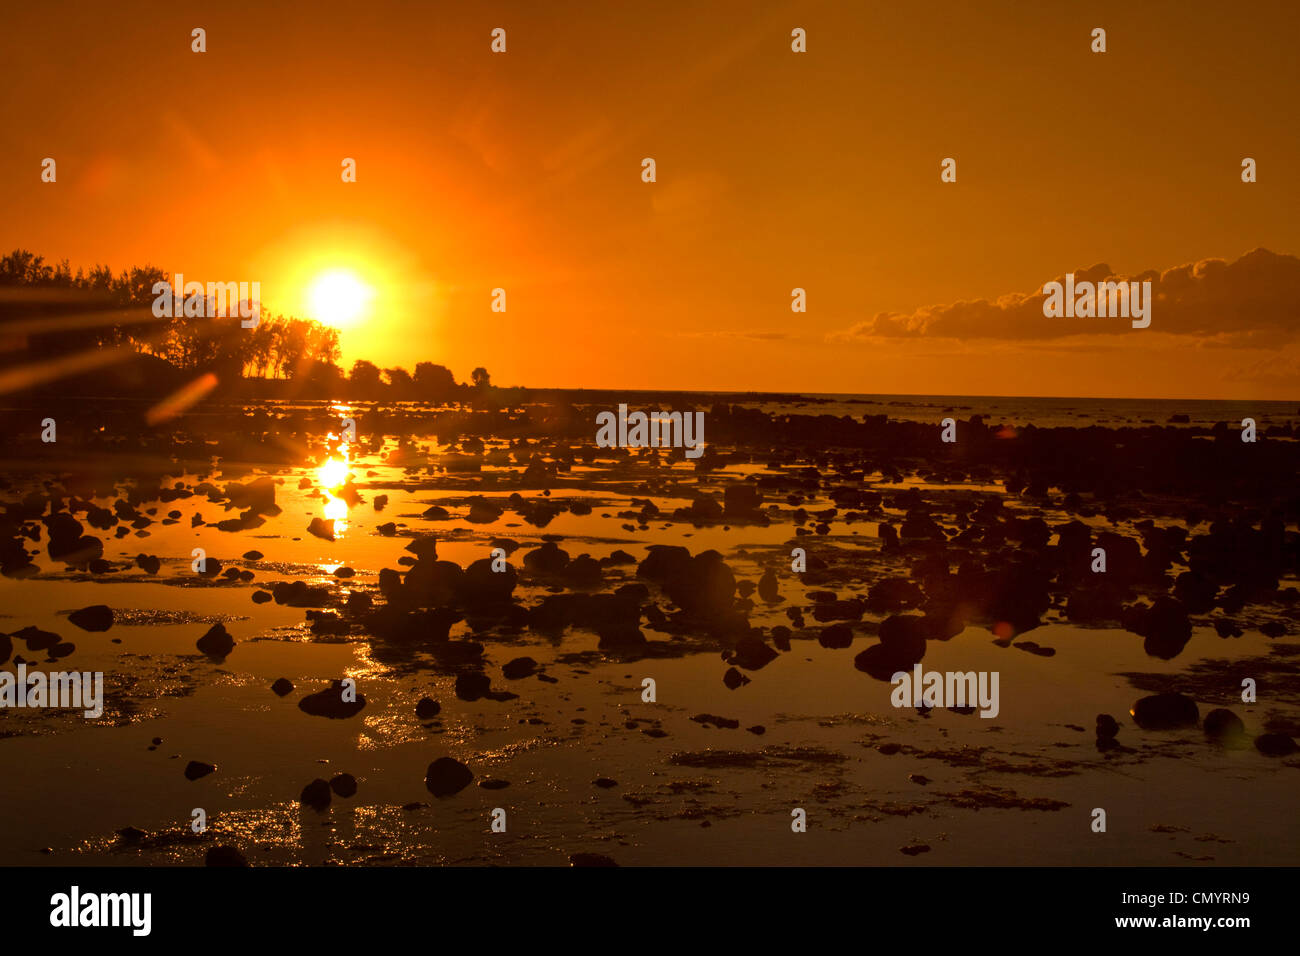 Sunset at Trou aus Biches beach at low tide, Mauritius, Africa - Stock Image